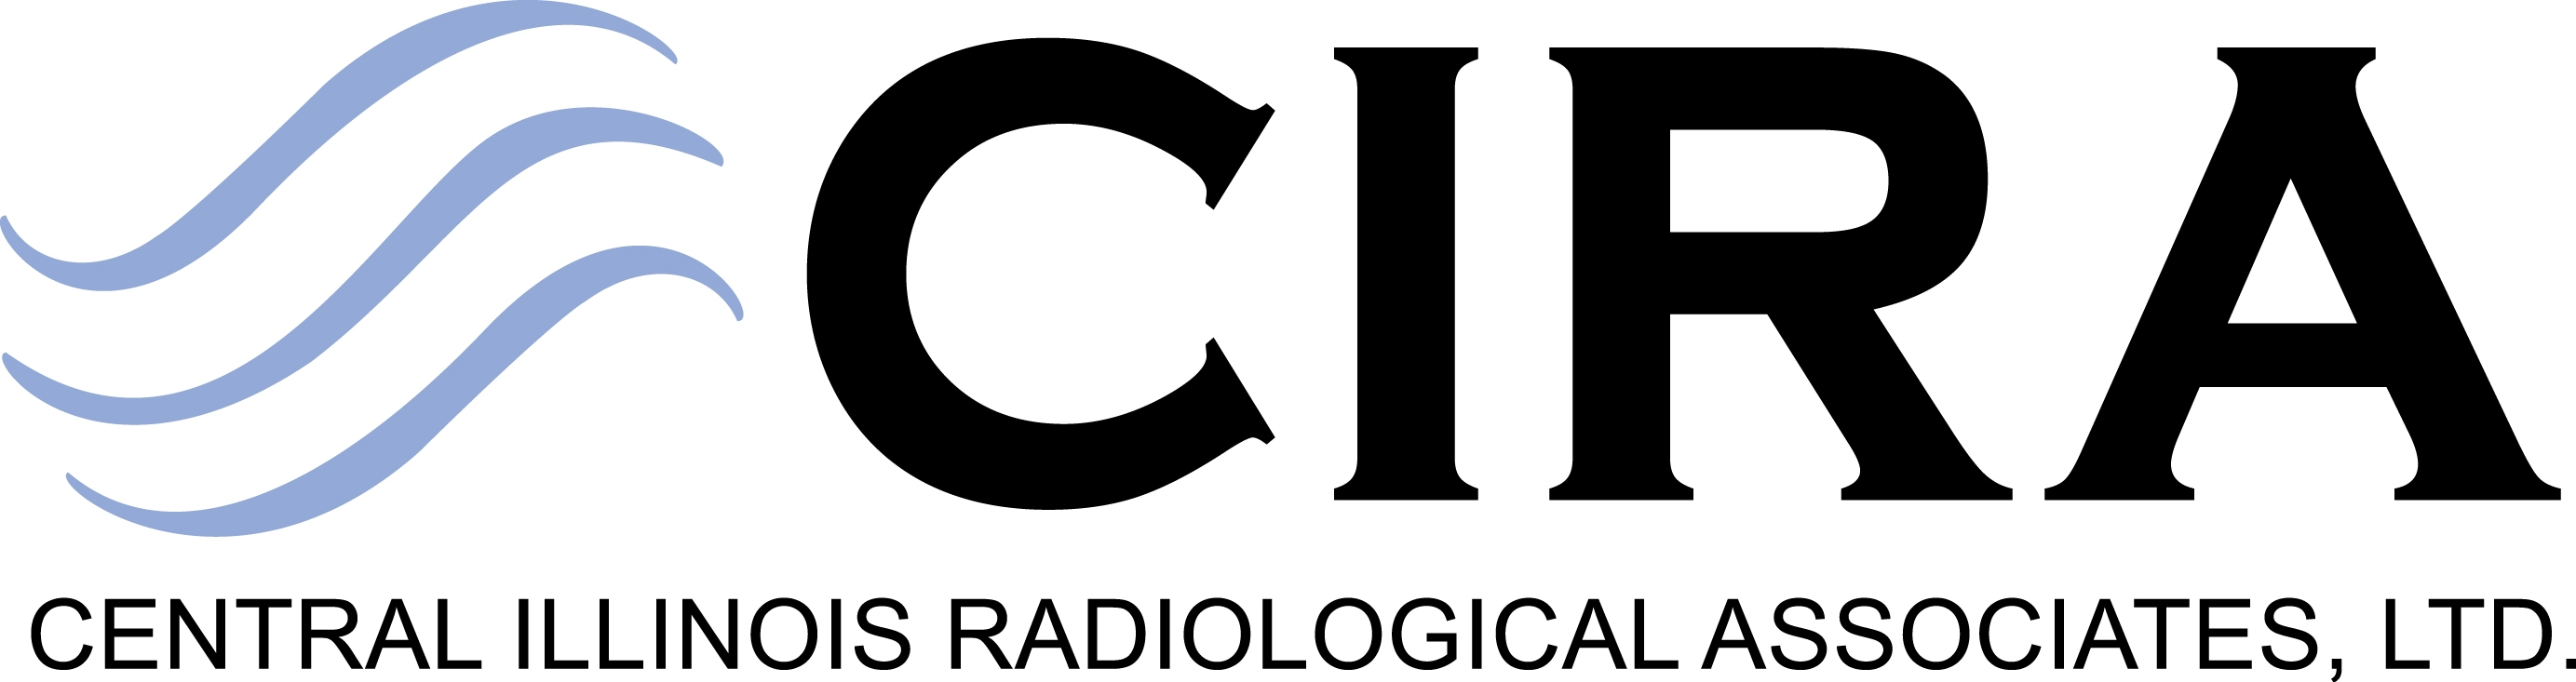 Central Illinois Radiological Associates, East Peoria, IL